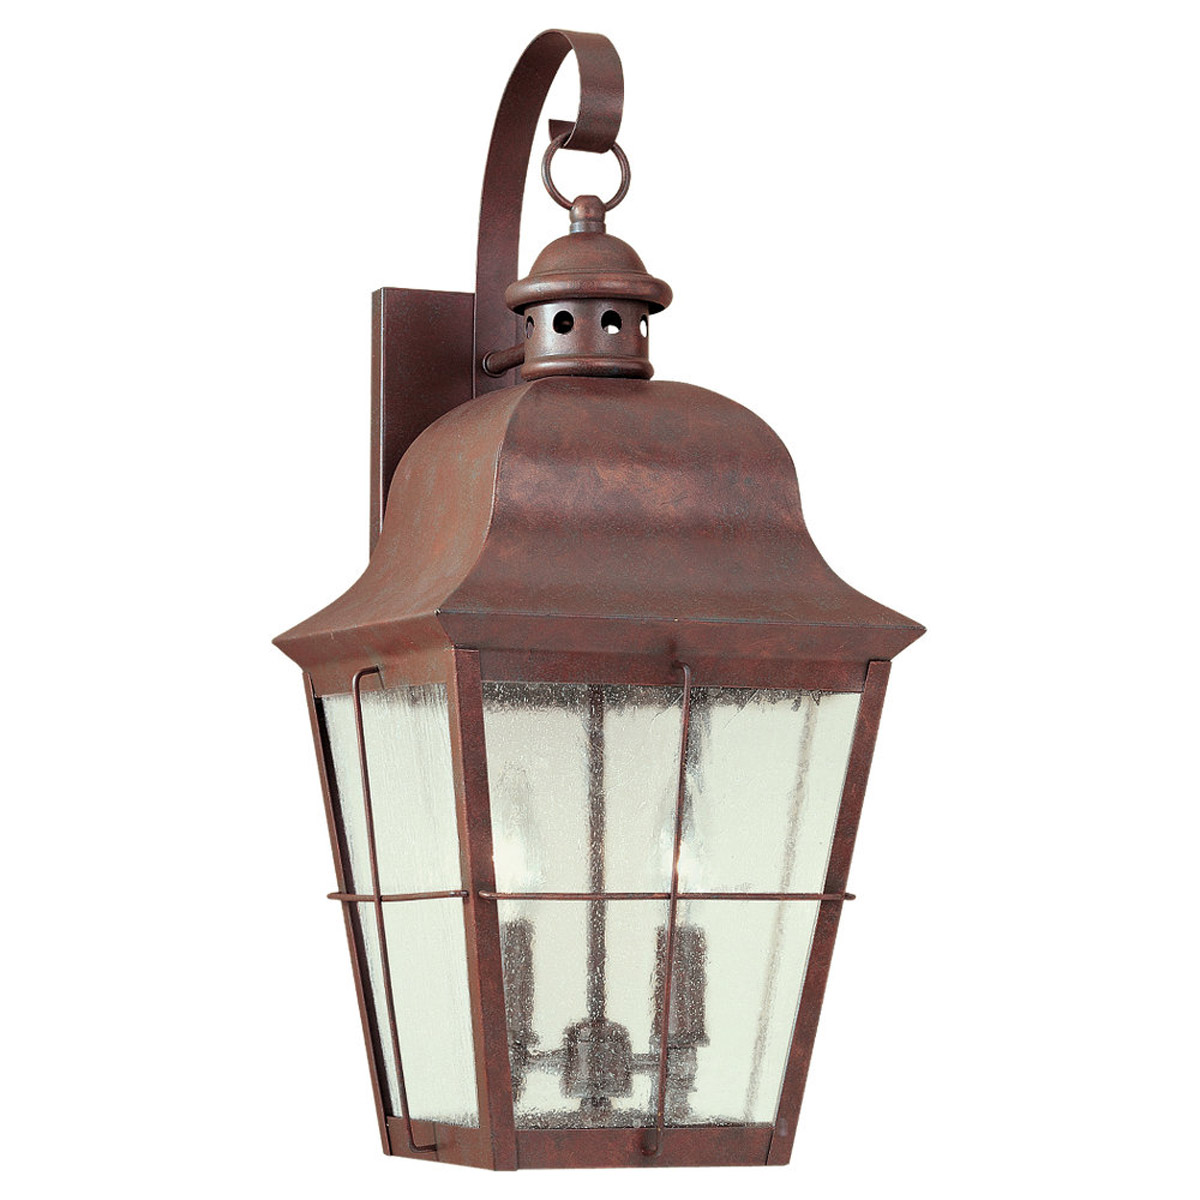 Sea Gull Lighting Chatham 2 Light Outdoor Wall Lantern in Weathered Copper 8463-44 photo